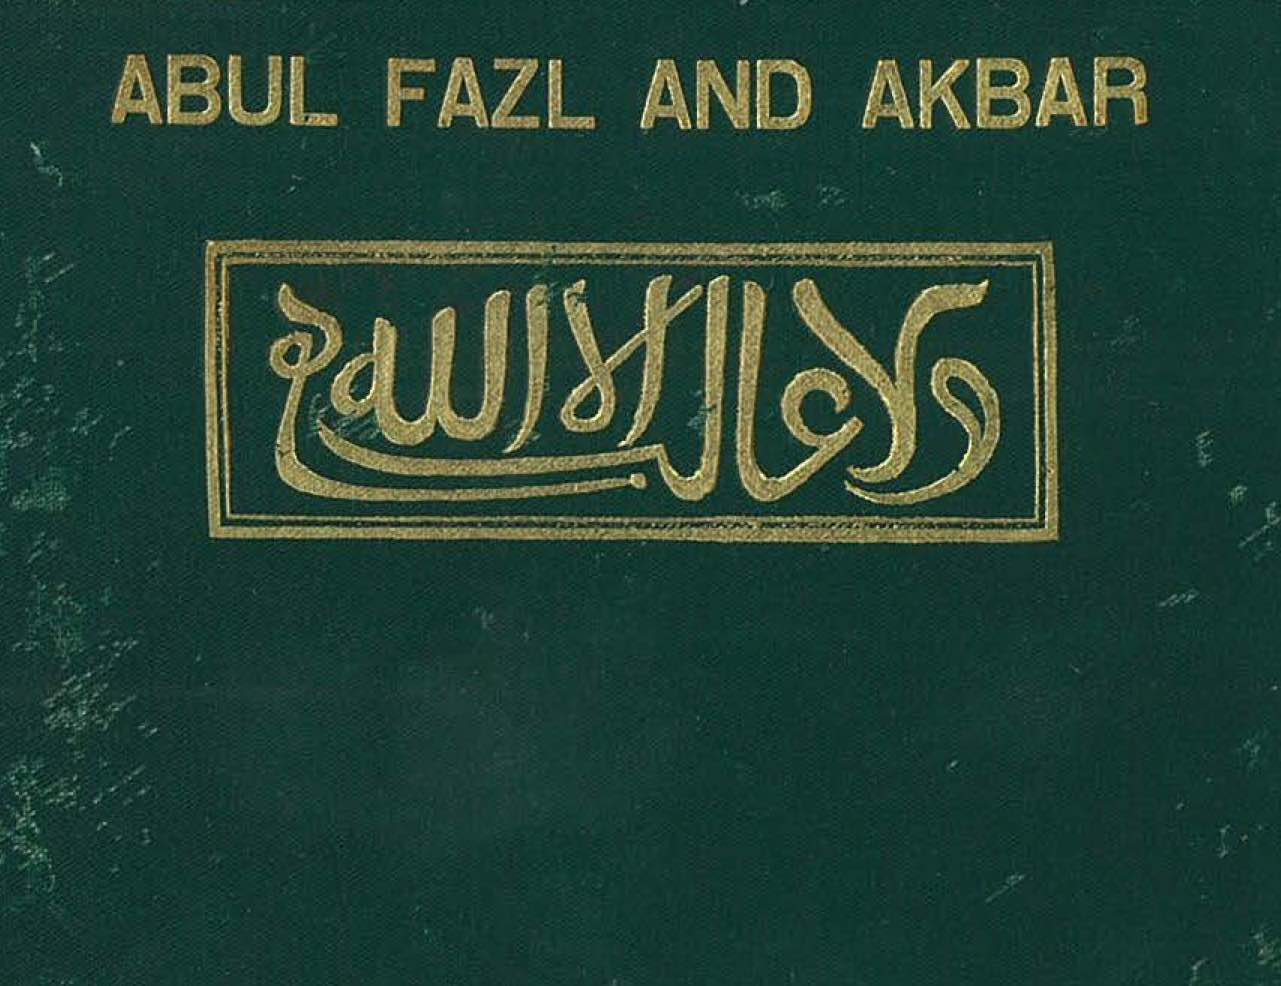 Abul Dazel and Akbar published by C Jinarajadasa